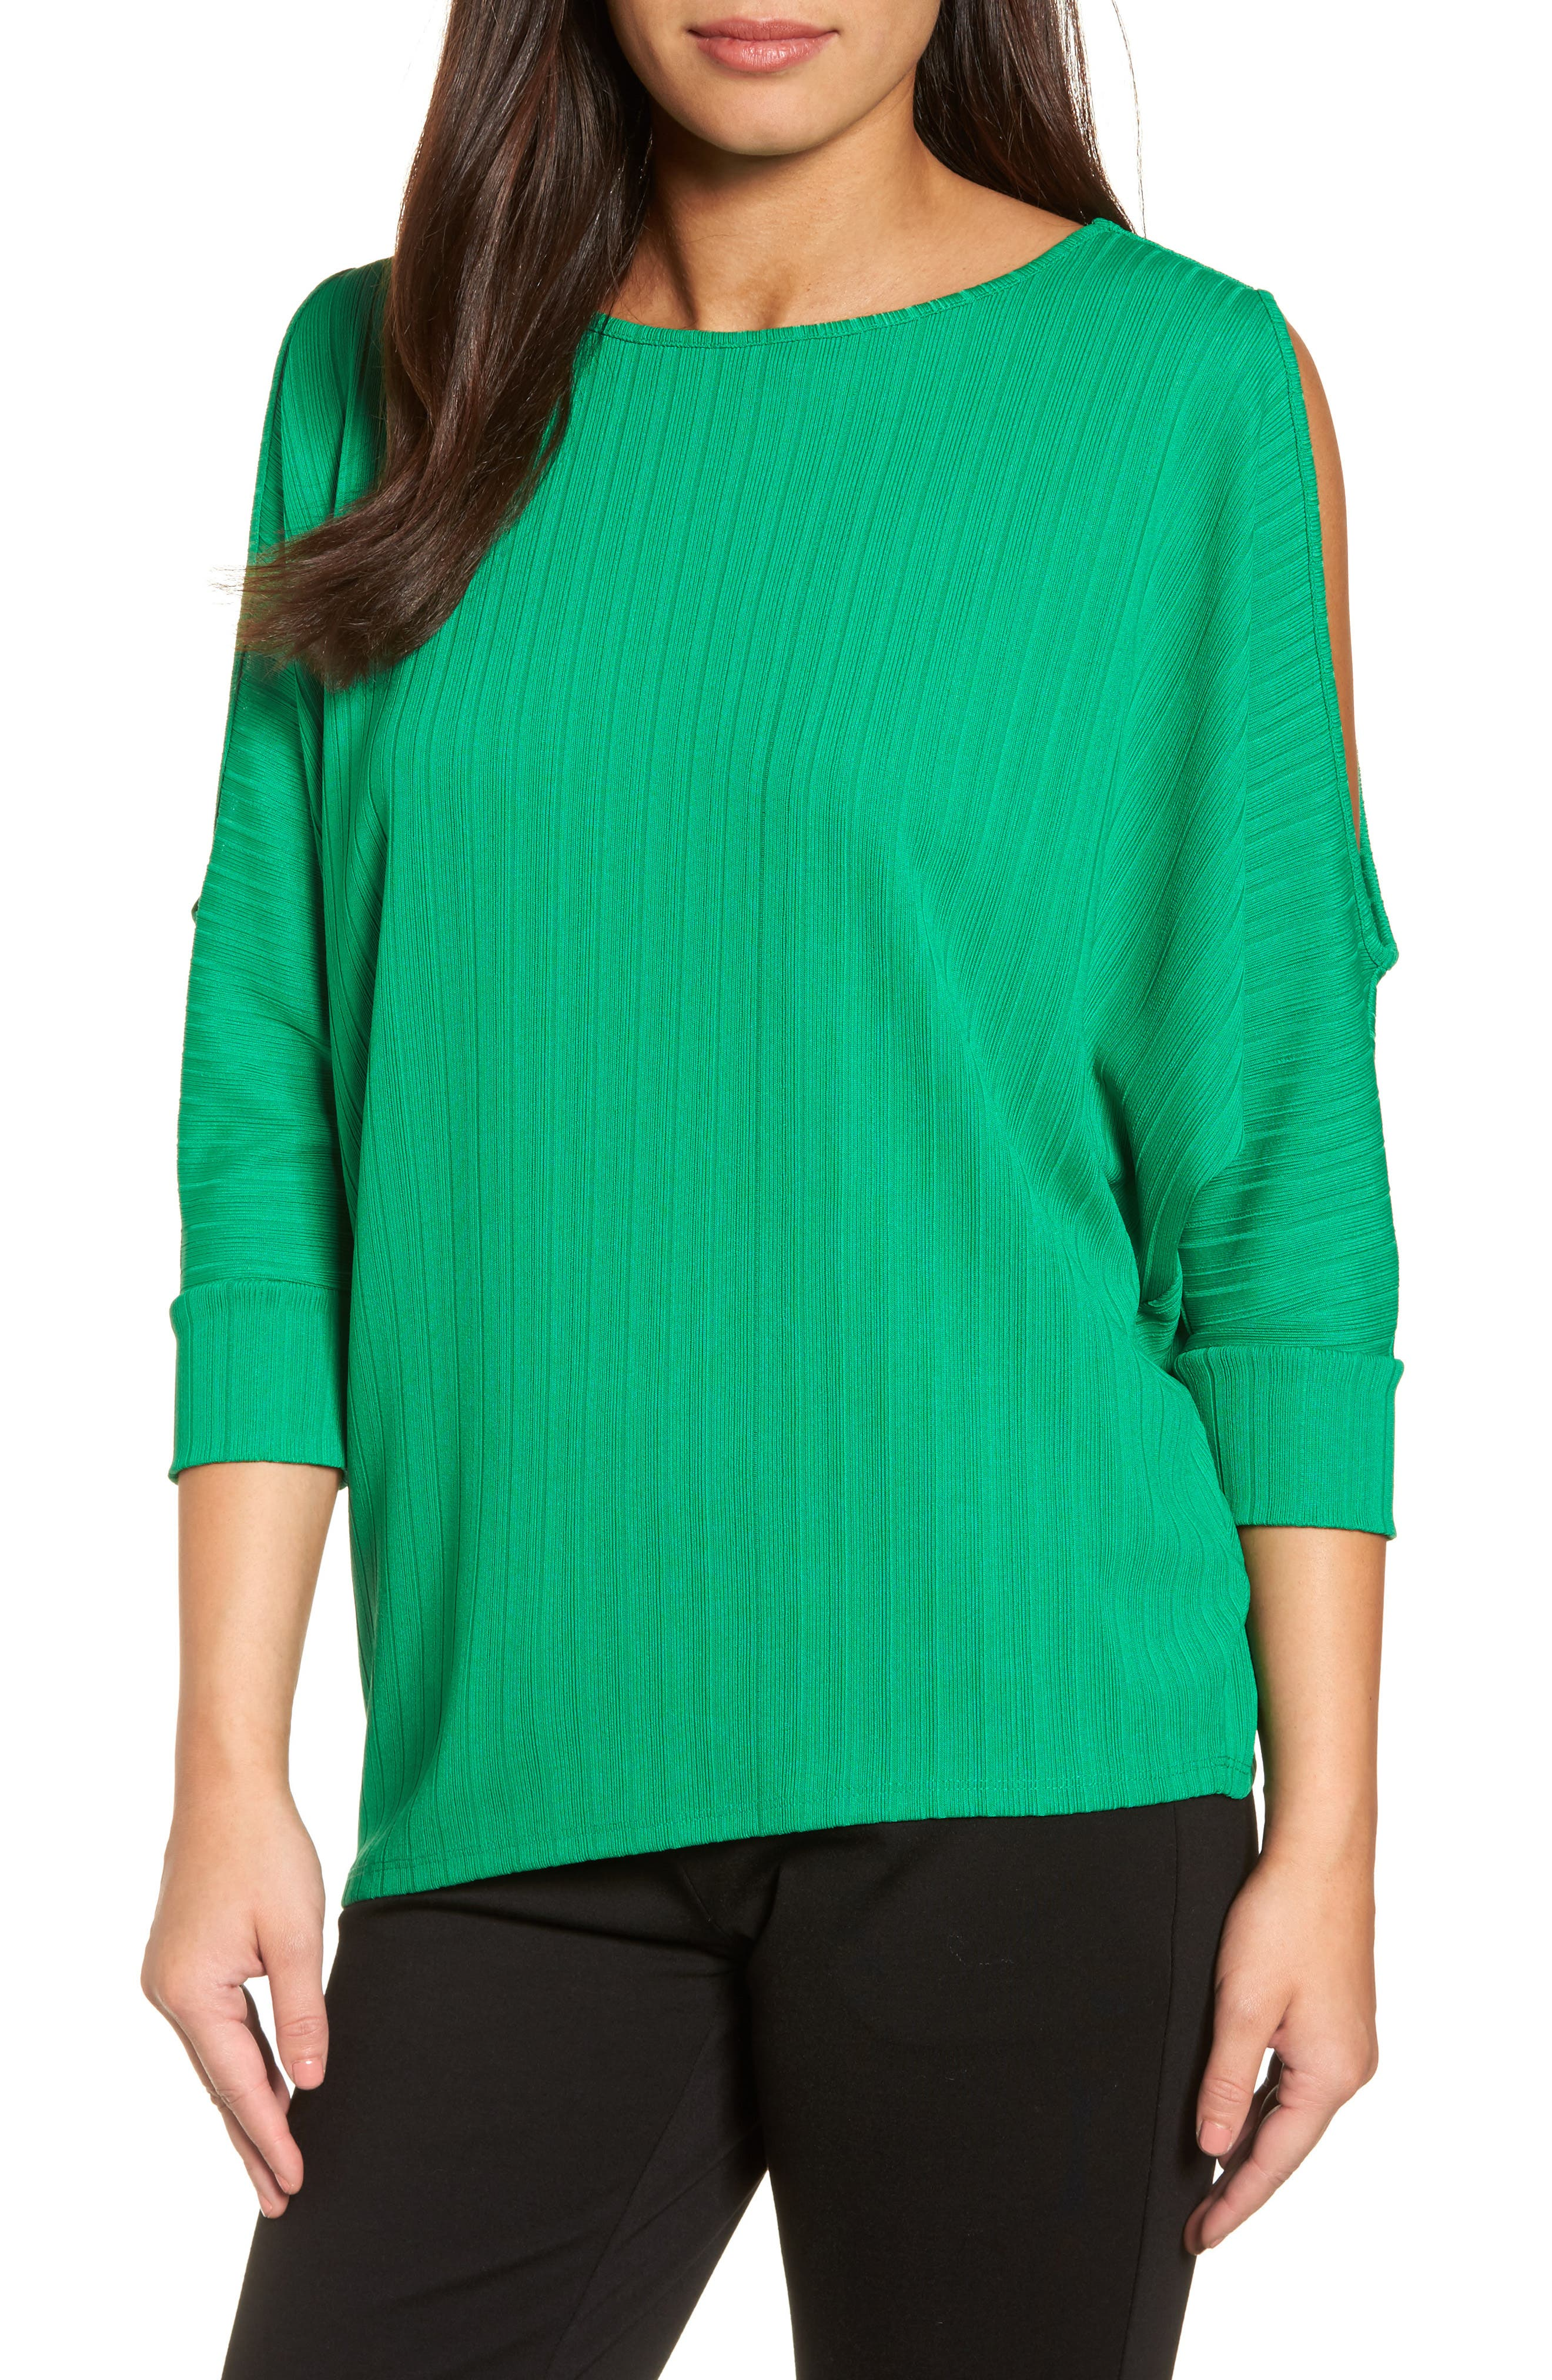 Alternate Image 1 Selected - Chaus Ribbed Knit Cold Shoulder Top